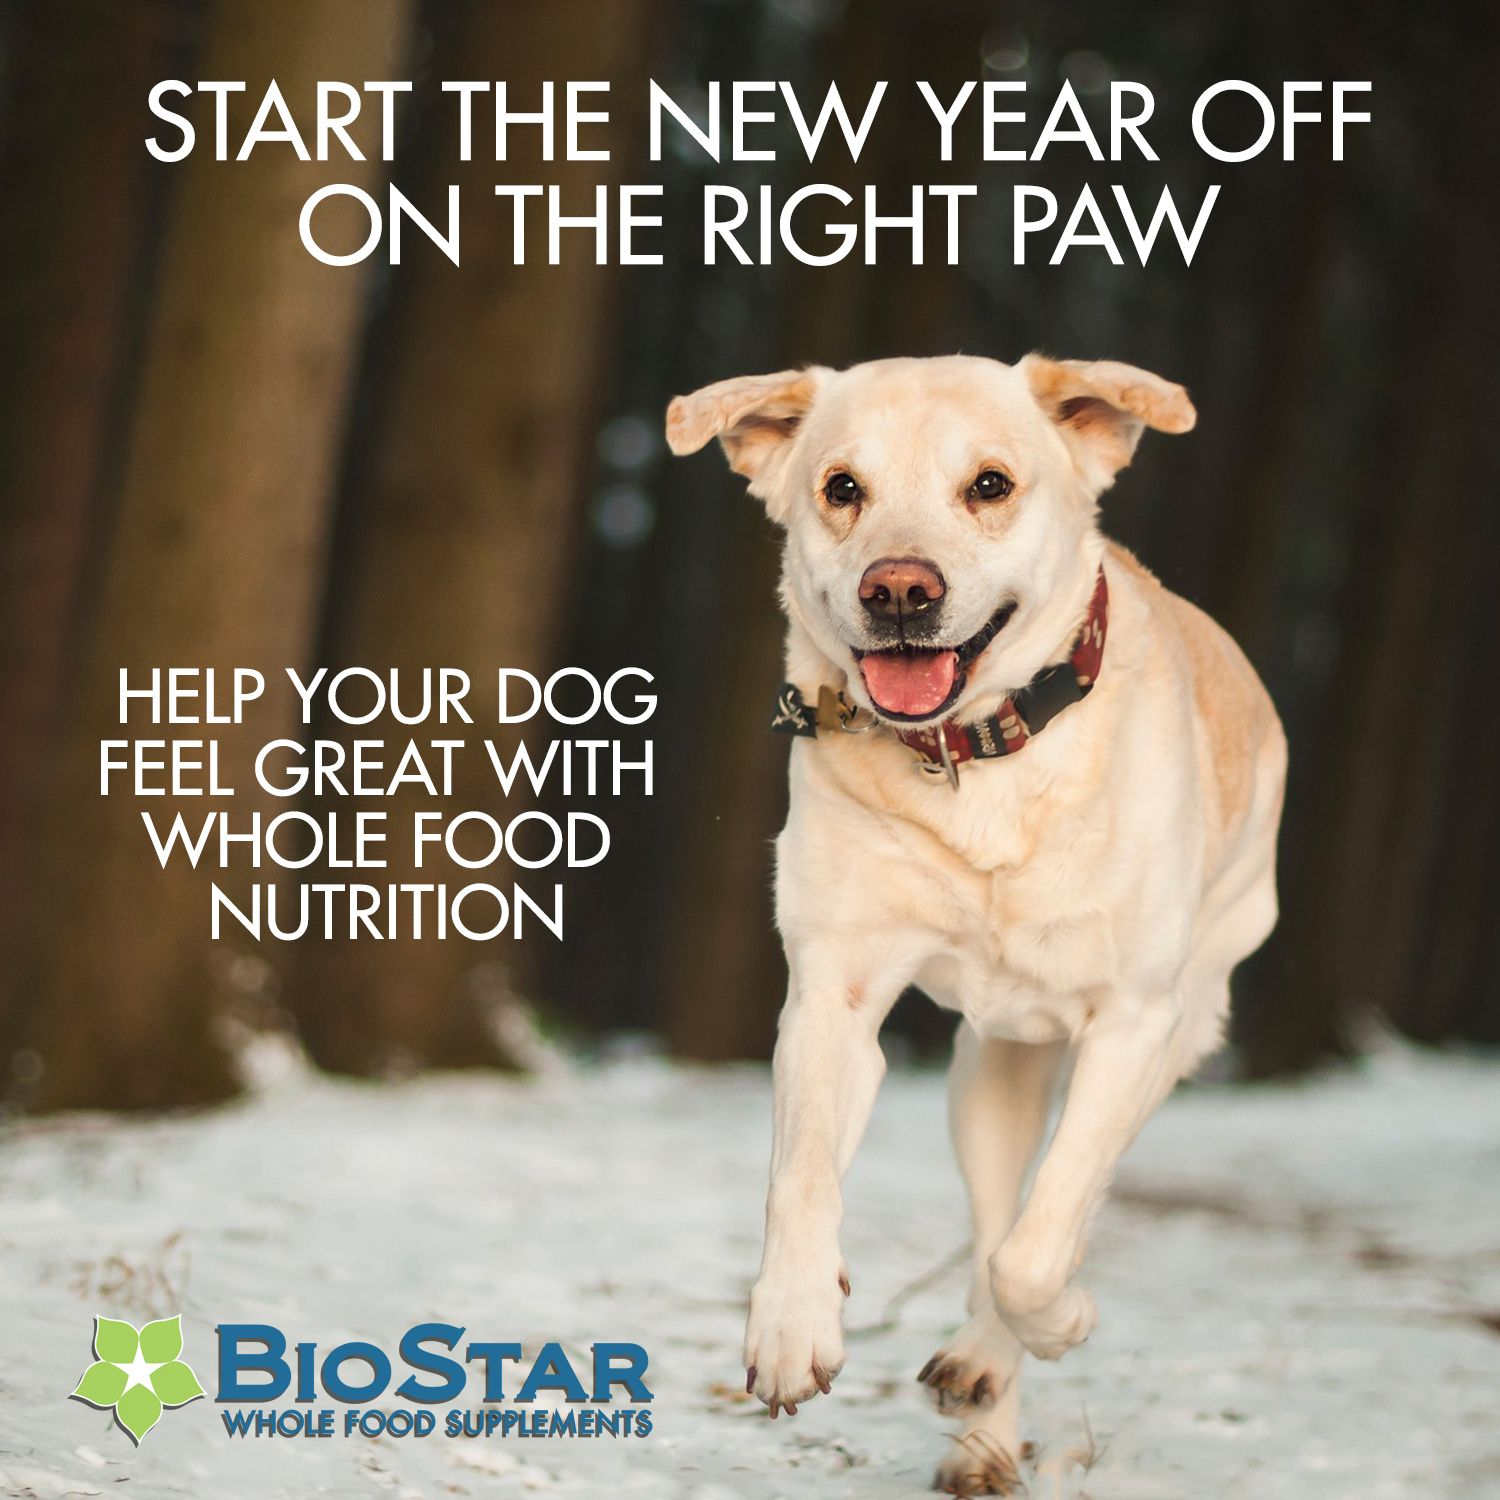 Whole food supplements for your dog. Dogs, Your dog